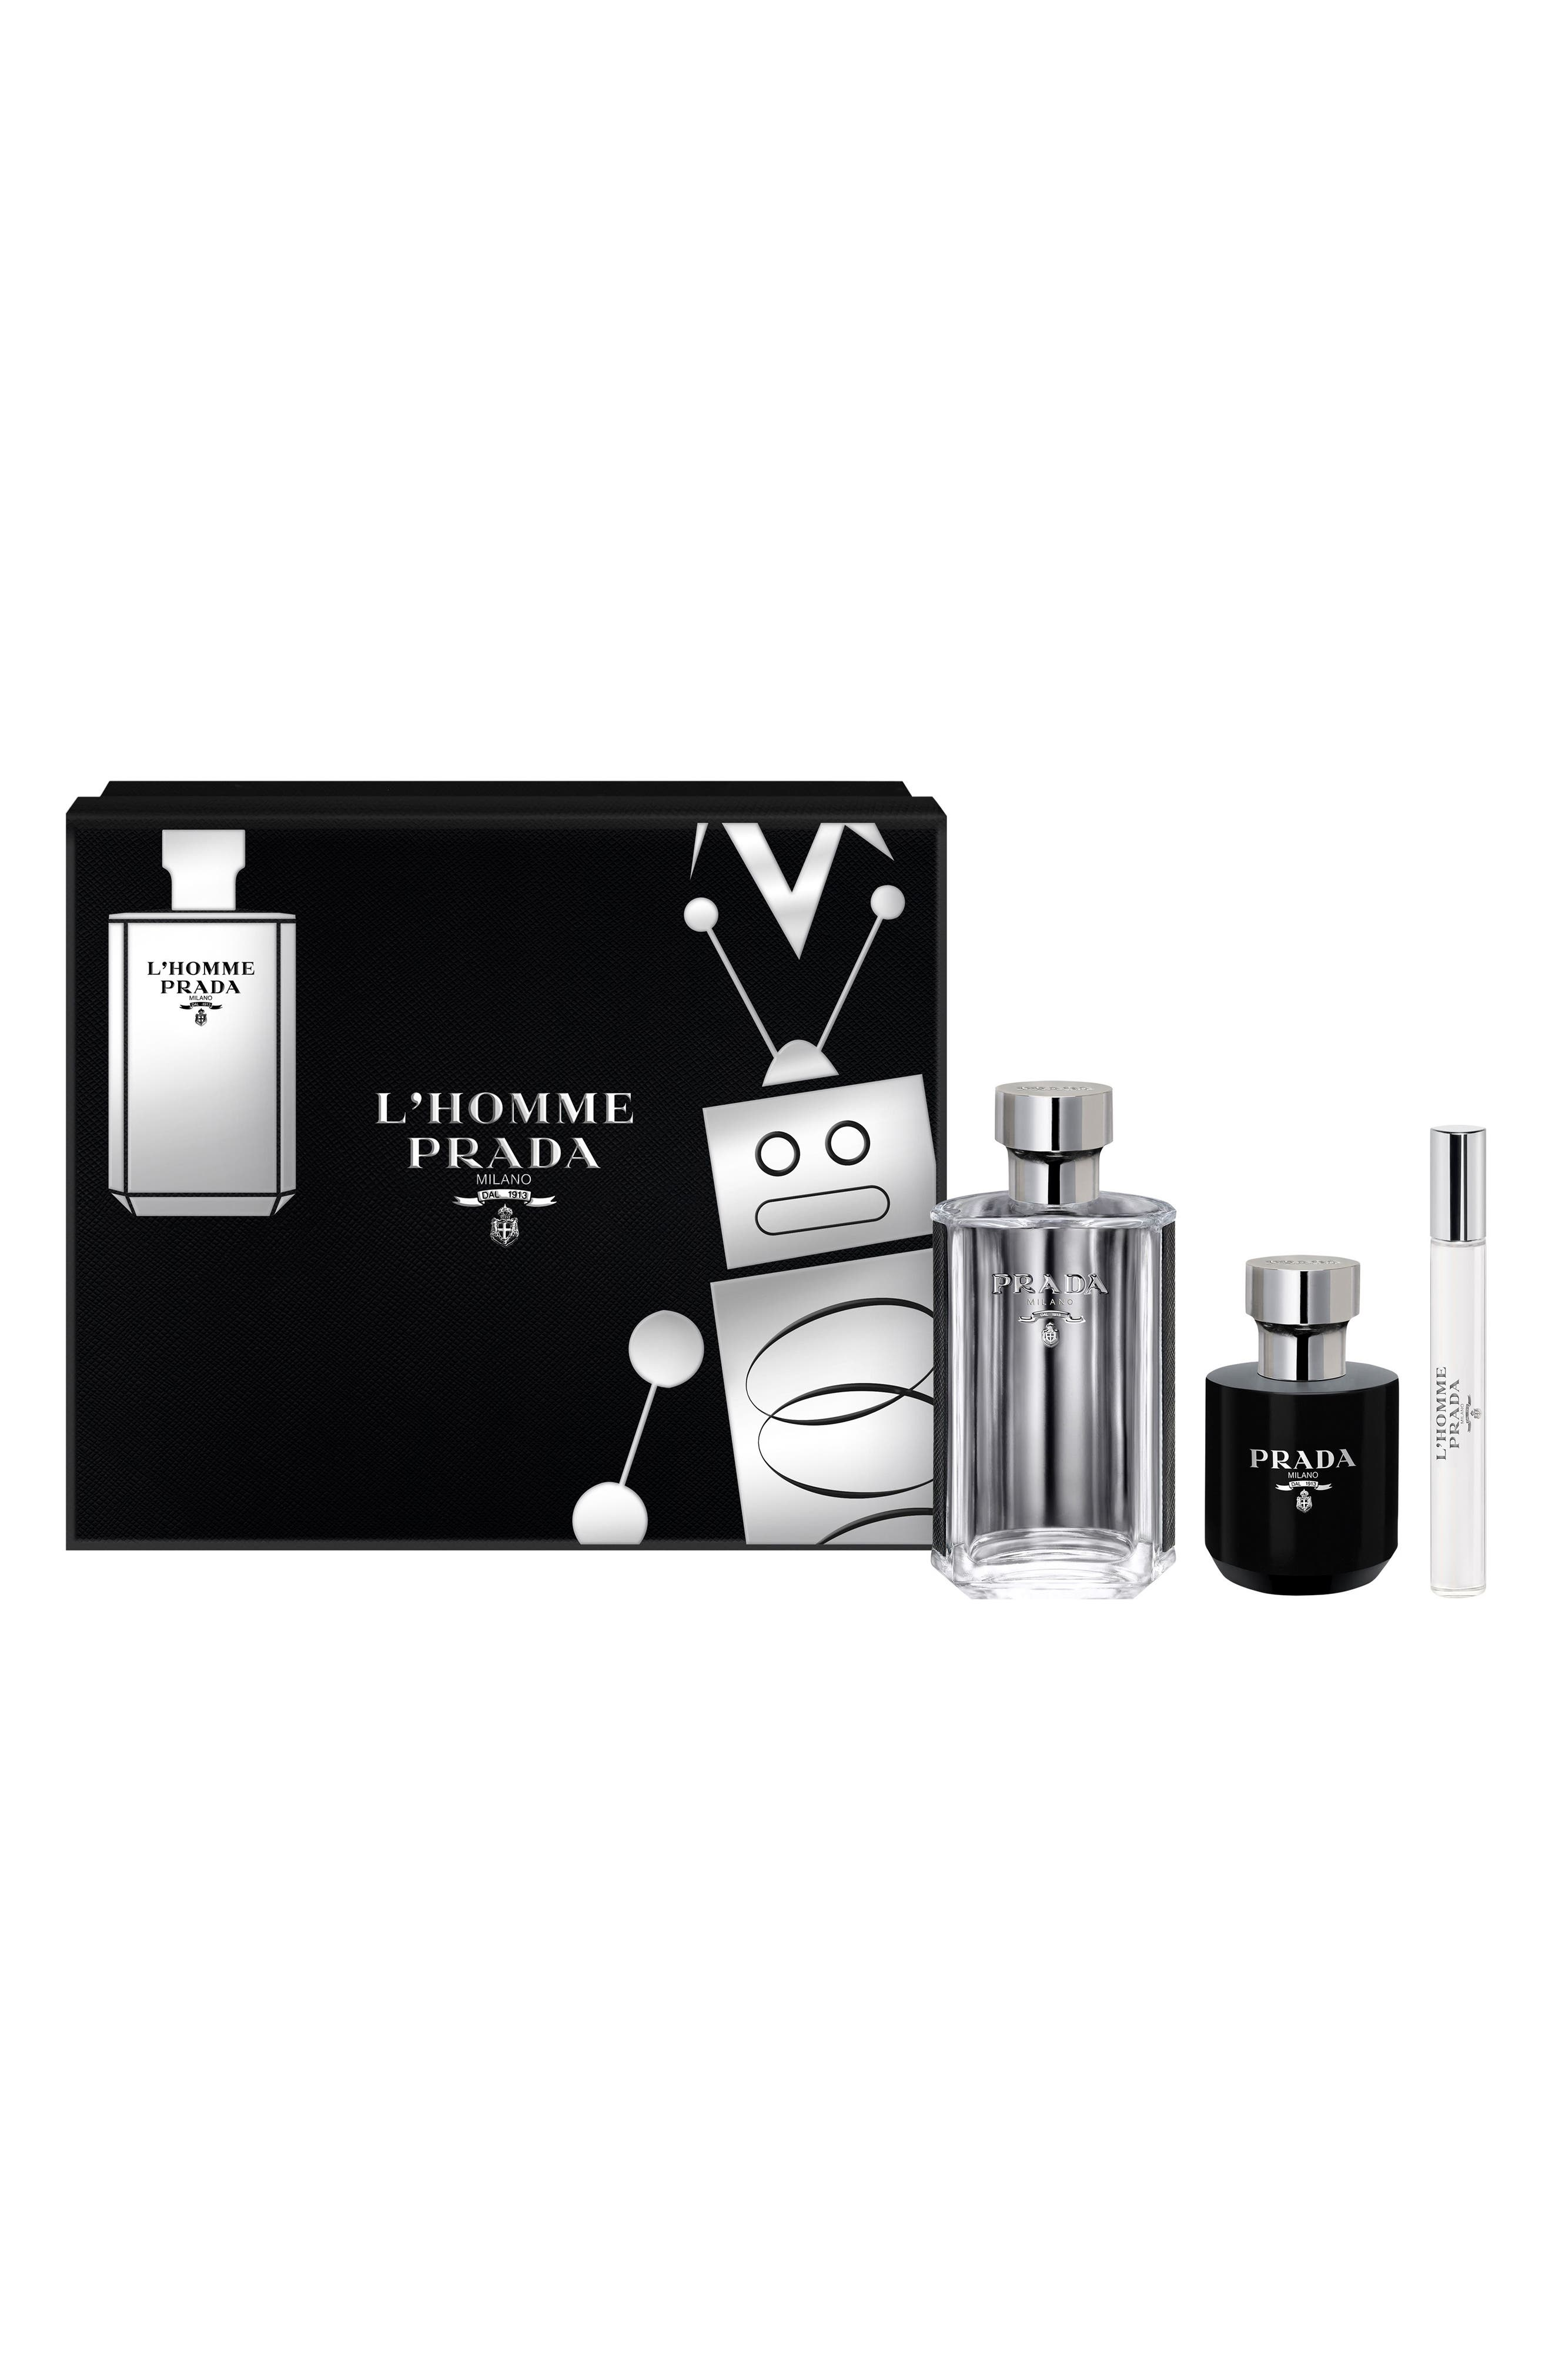 L'Homme Prada Set,                             Main thumbnail 1, color,                             000